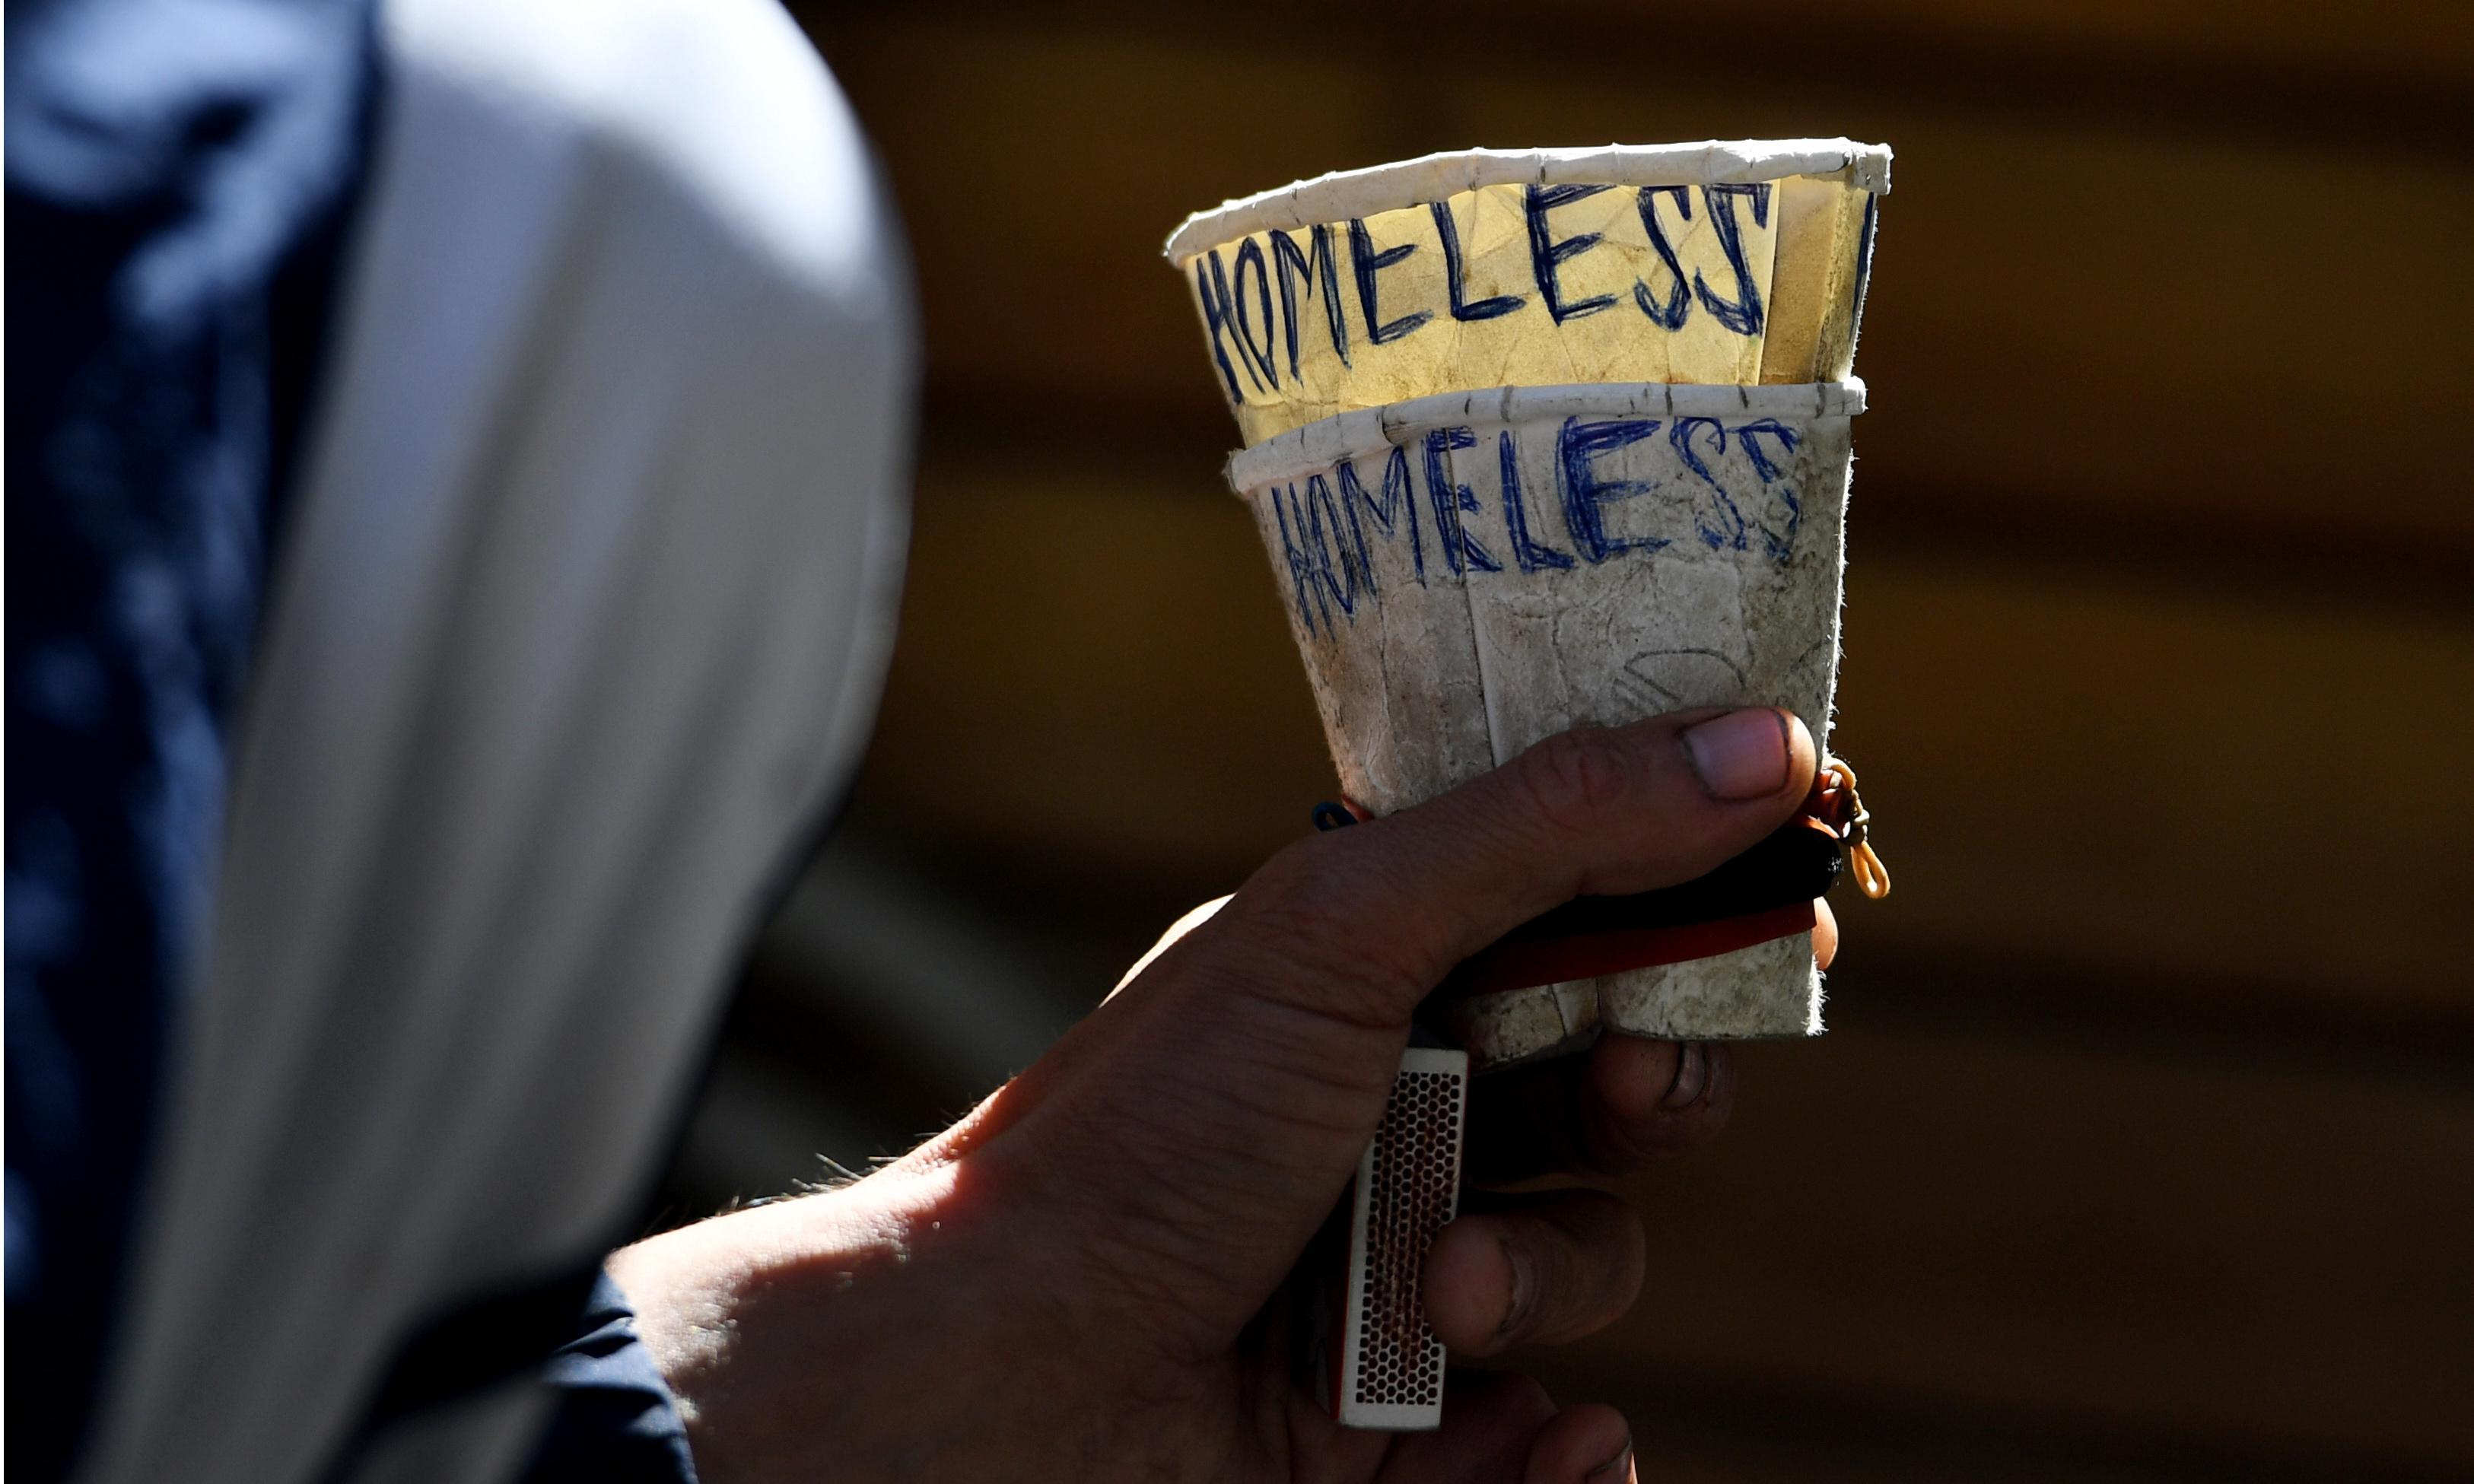 Coalition stopped welfare payments to 55,000 homeless or at-risk jobseekers in six months